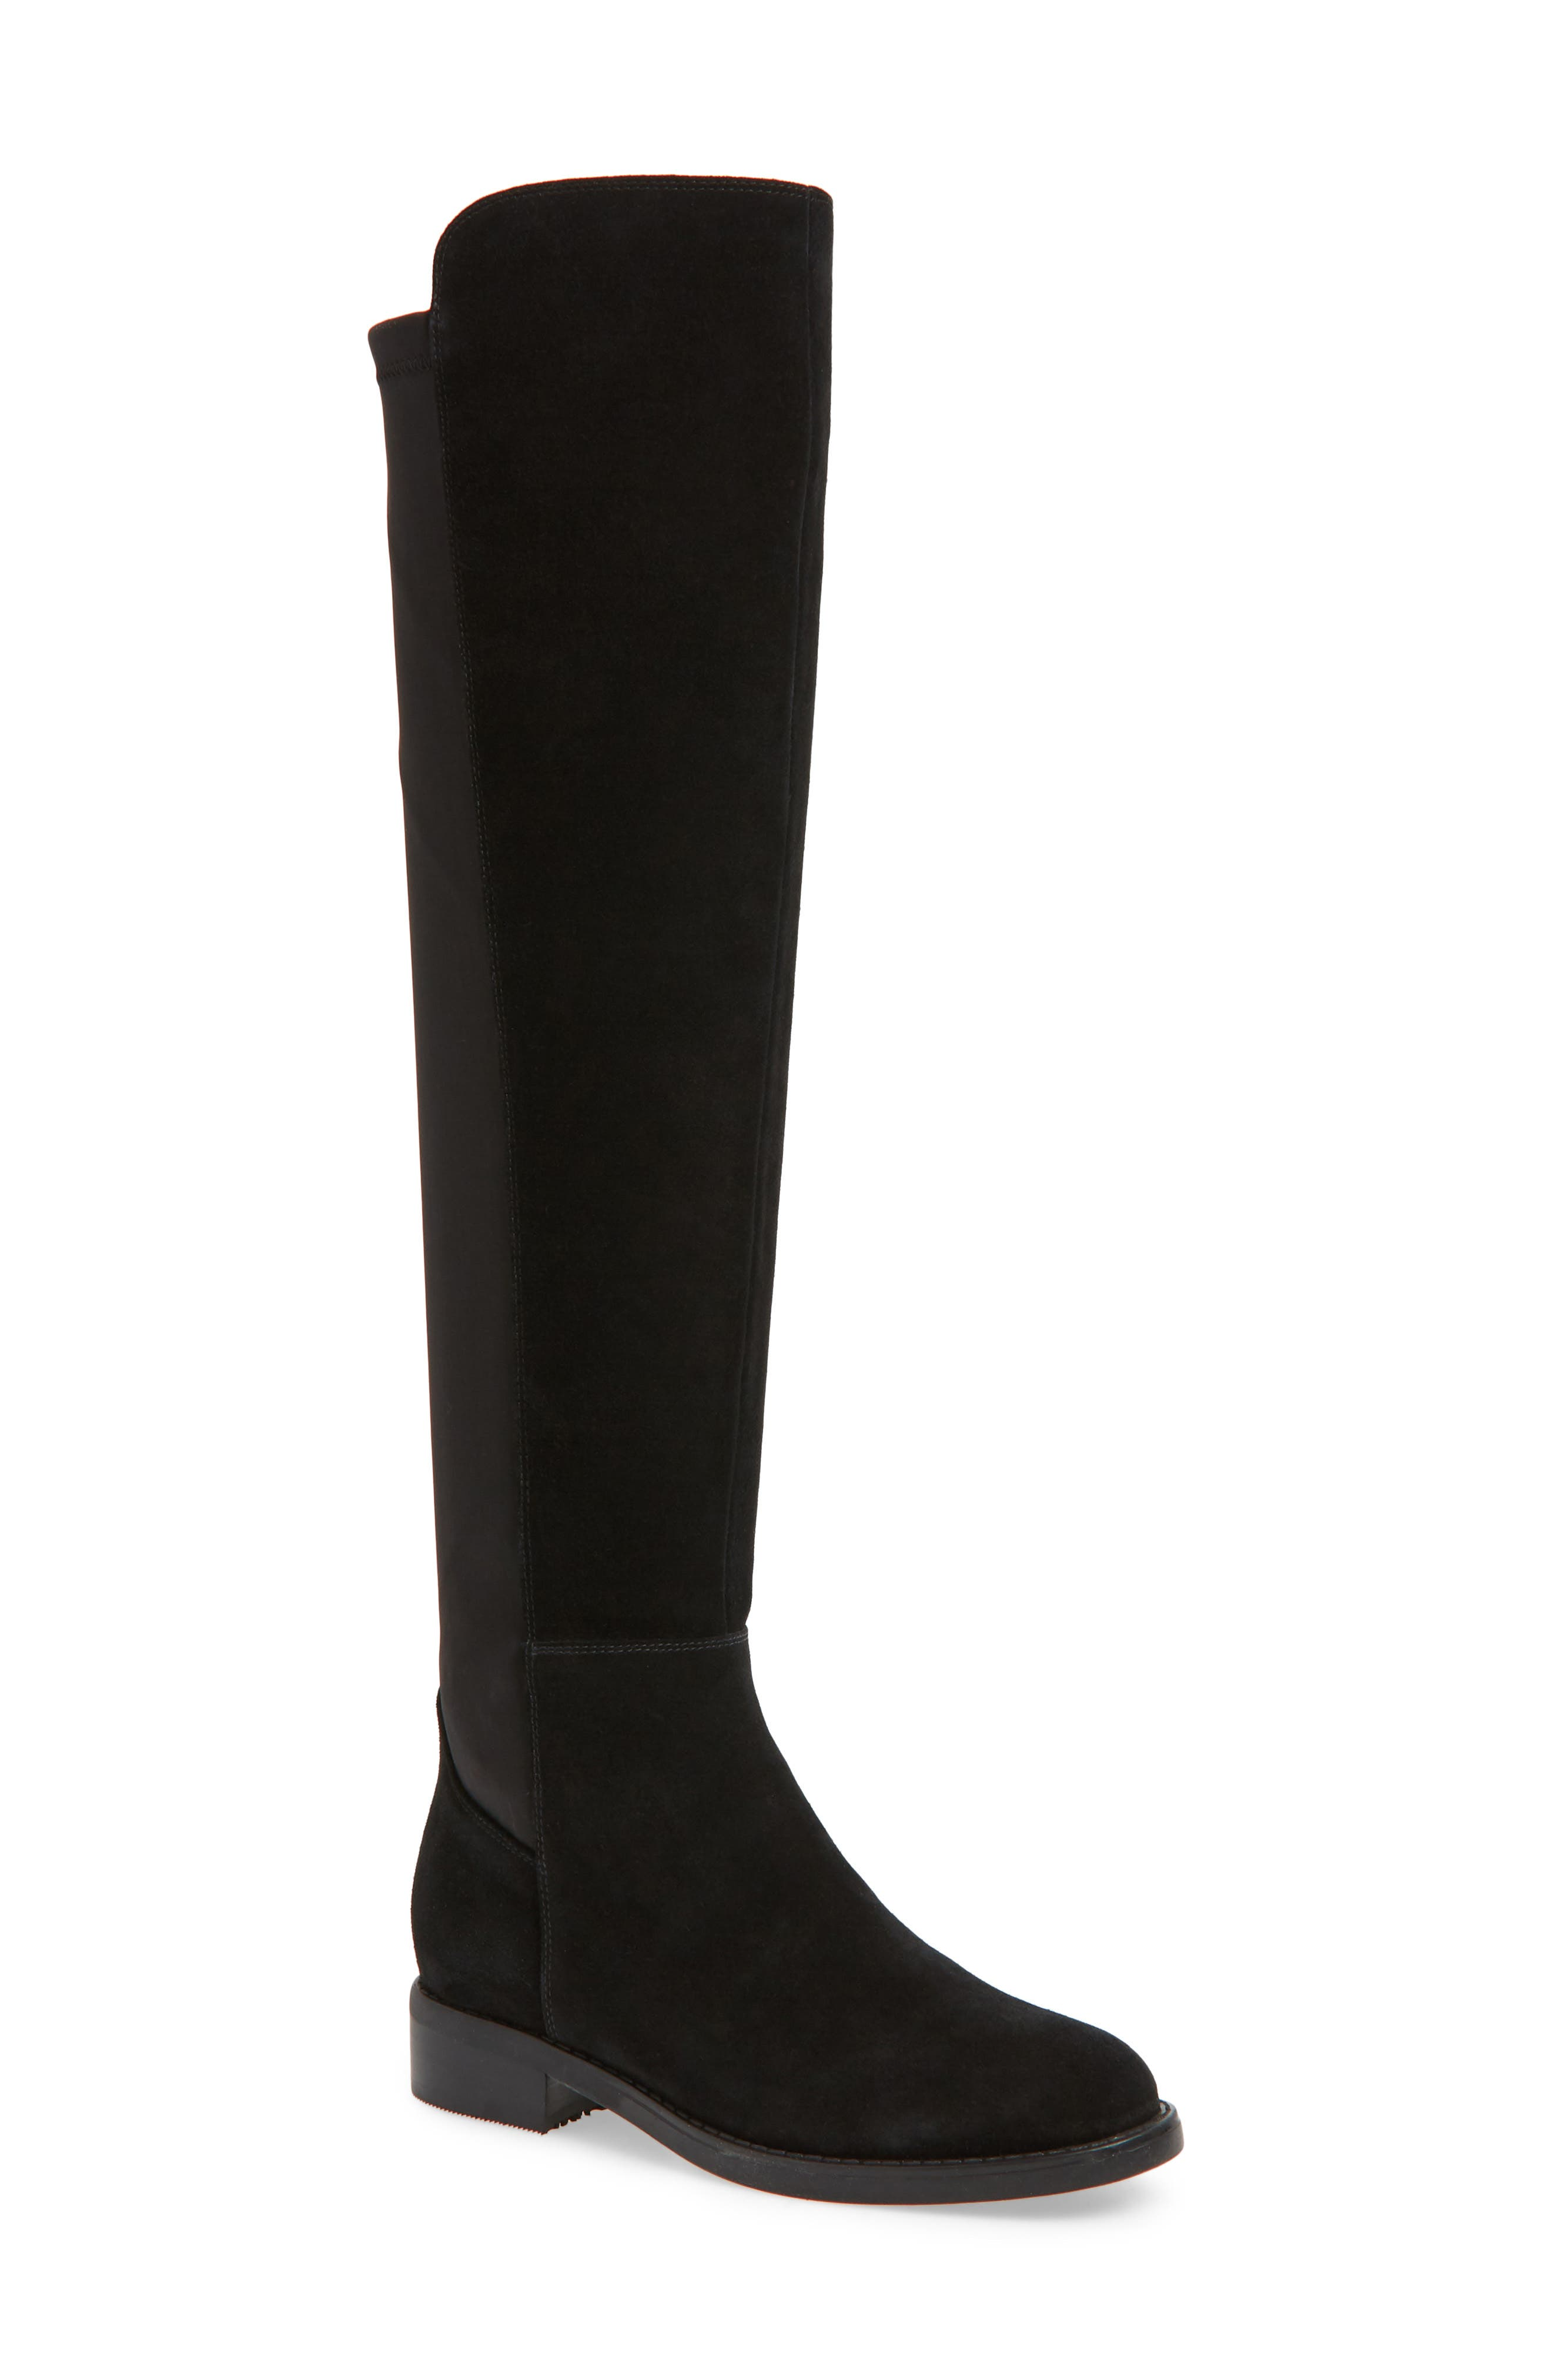 BLONDO, Danny Over the Knee Waterproof Boot, Main thumbnail 1, color, 001